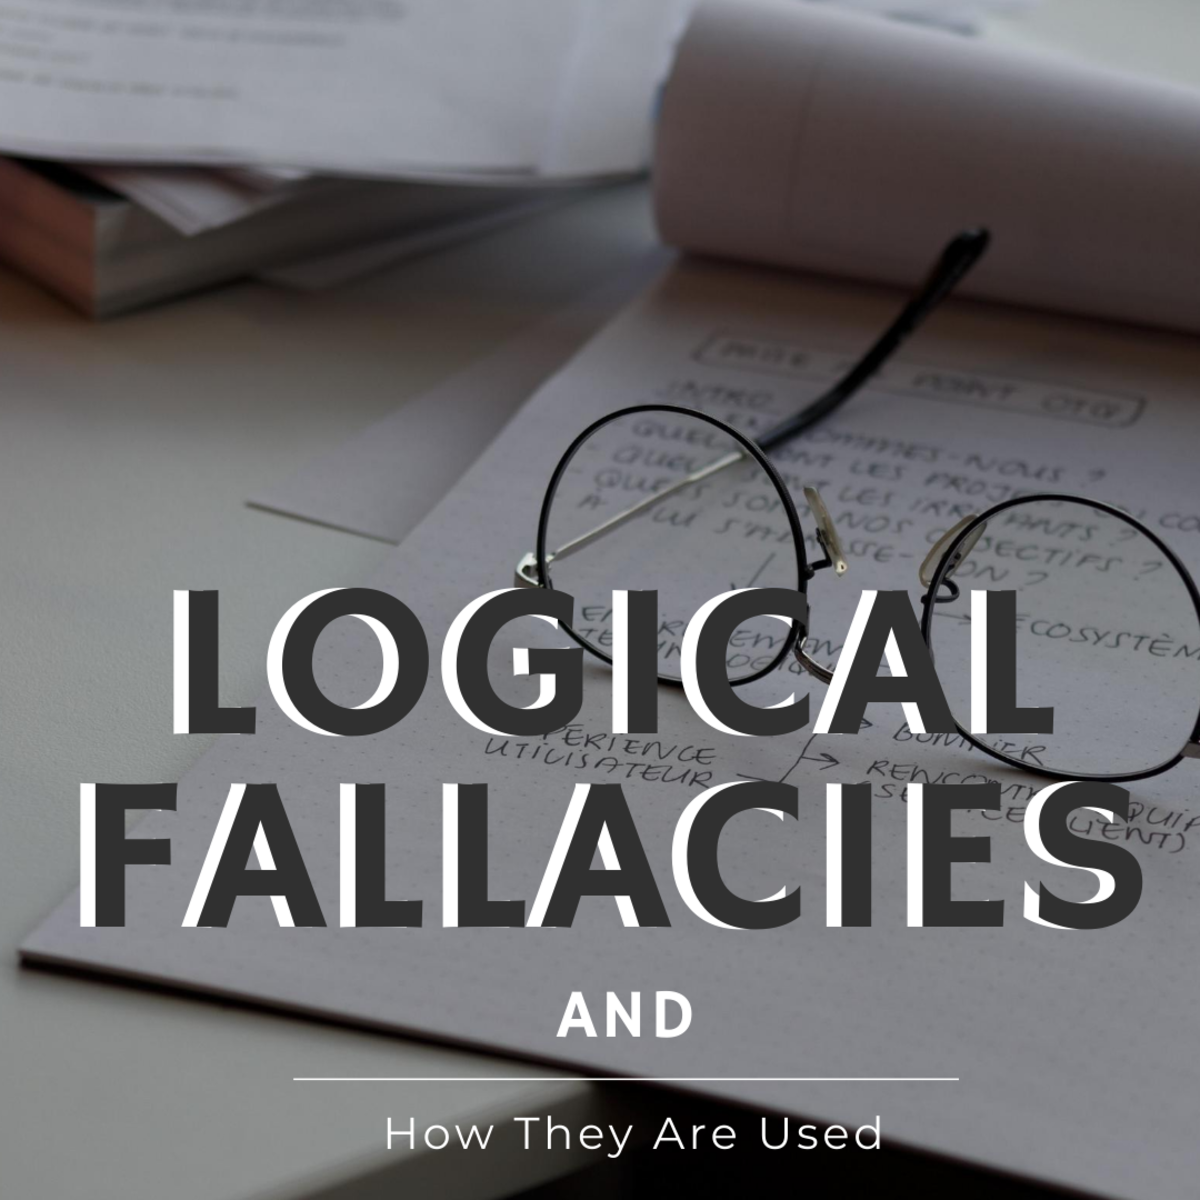 Examples of How Logical Fallacies Are Used